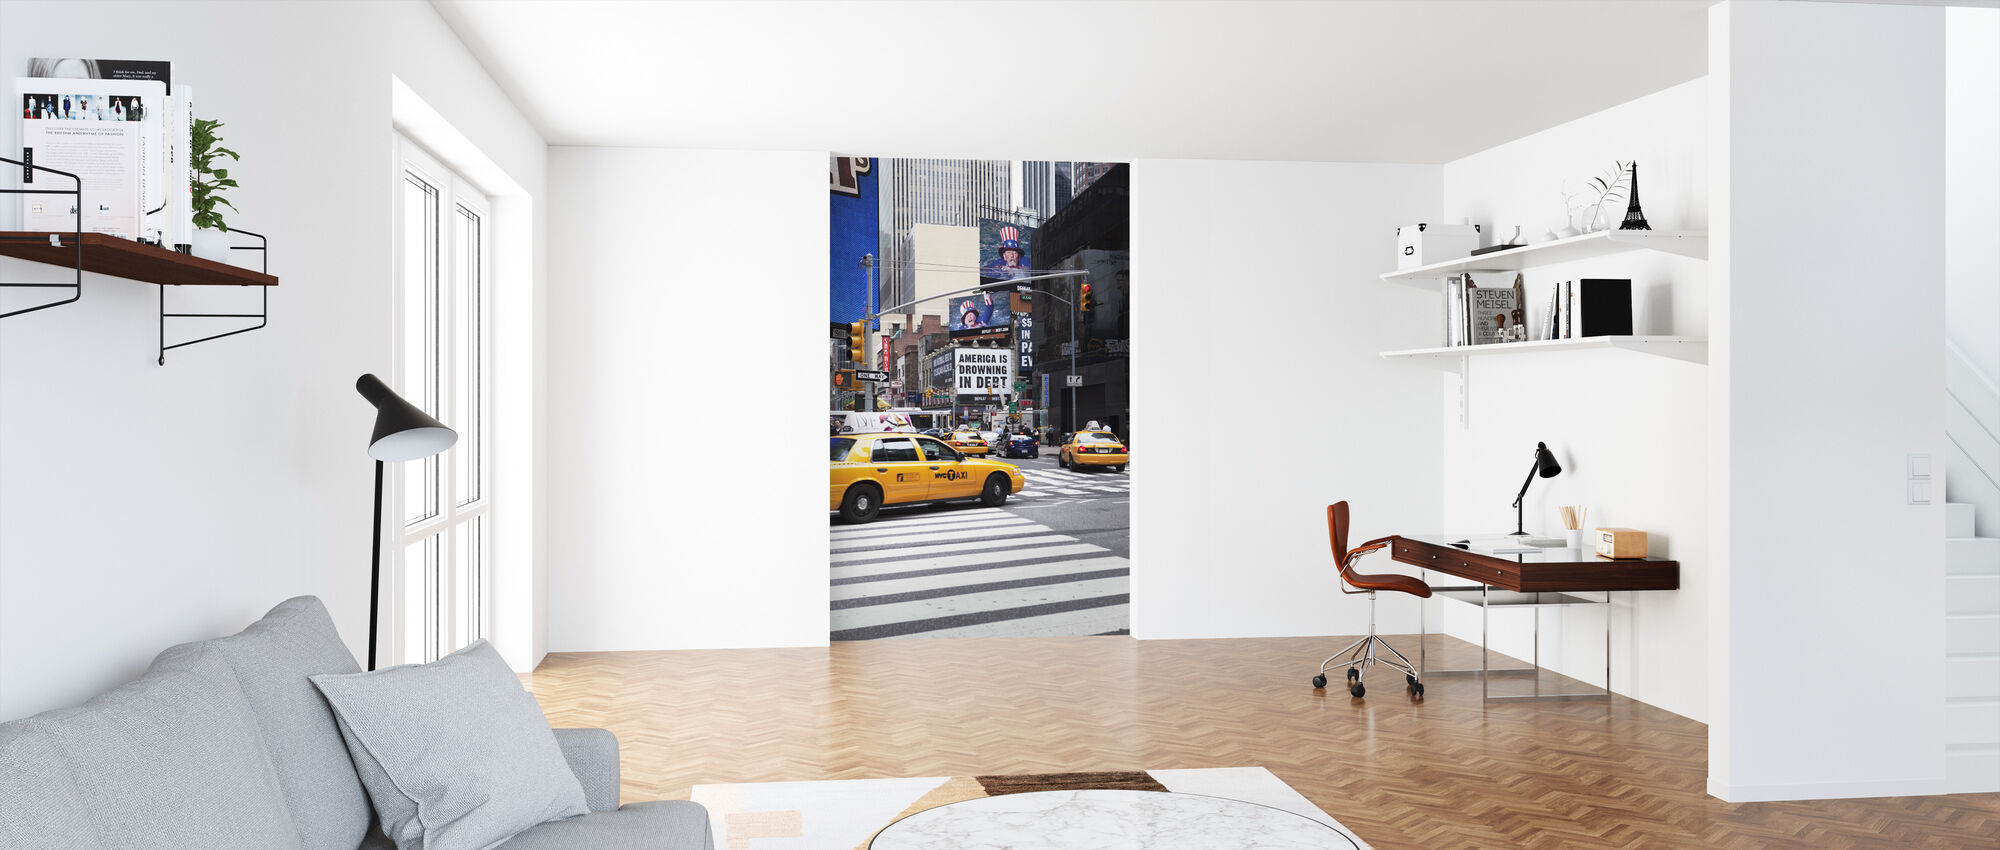 American Advertisement, New York - Wallpaper - Office